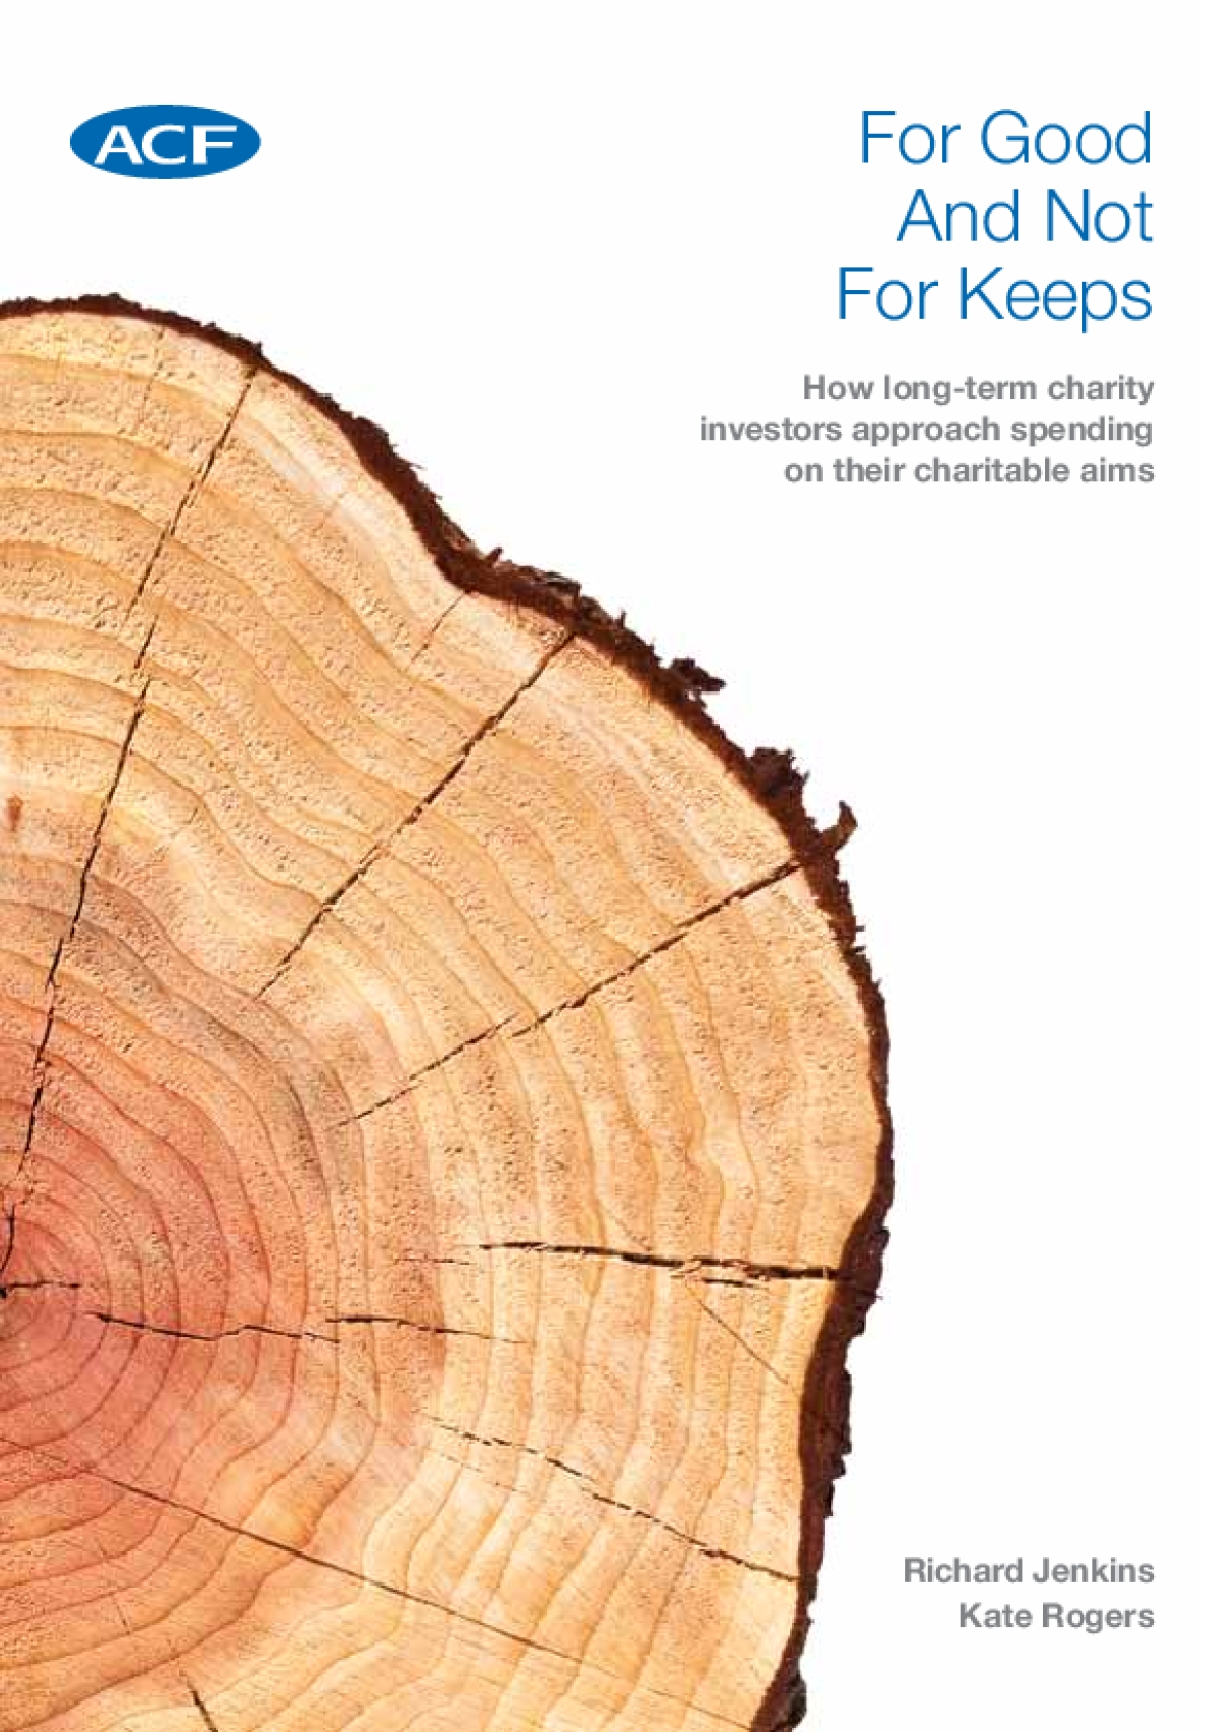 For Good And Not For Keeps: How Long-term Charity Investors Approach Spending on Their Charitable Aims